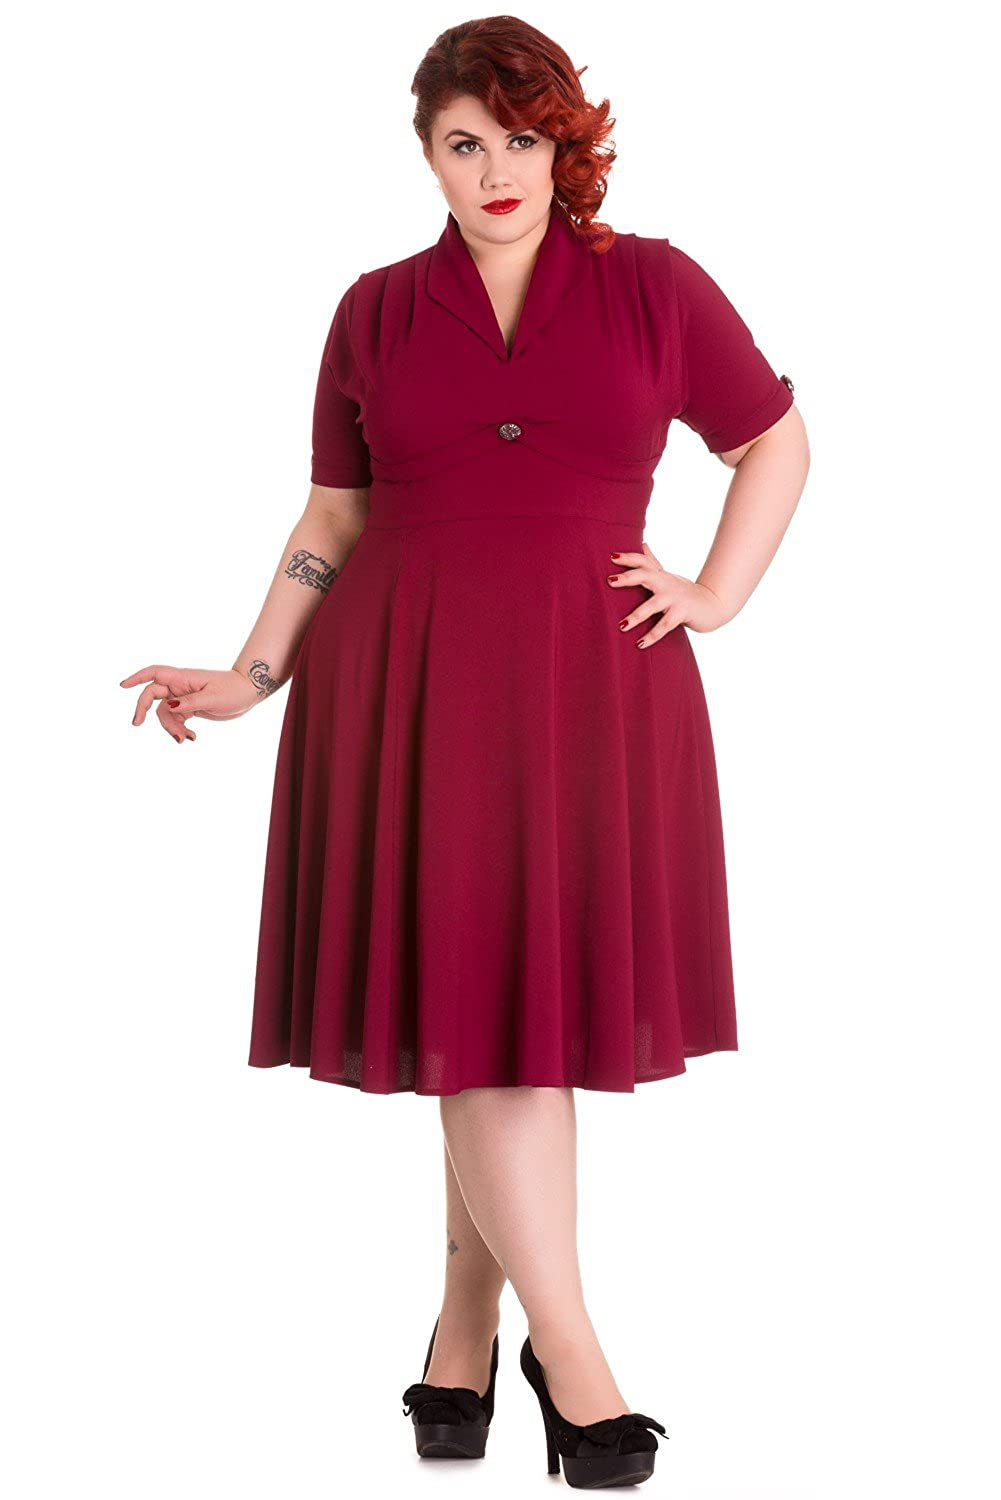 1930s Art Deco Plus Size Dresses | Tea Dresses, Party Dresses Hell Bunny Plus Size 60s Vintage Style Jocelyn Flare PartyDress $87.00 AT vintagedancer.com